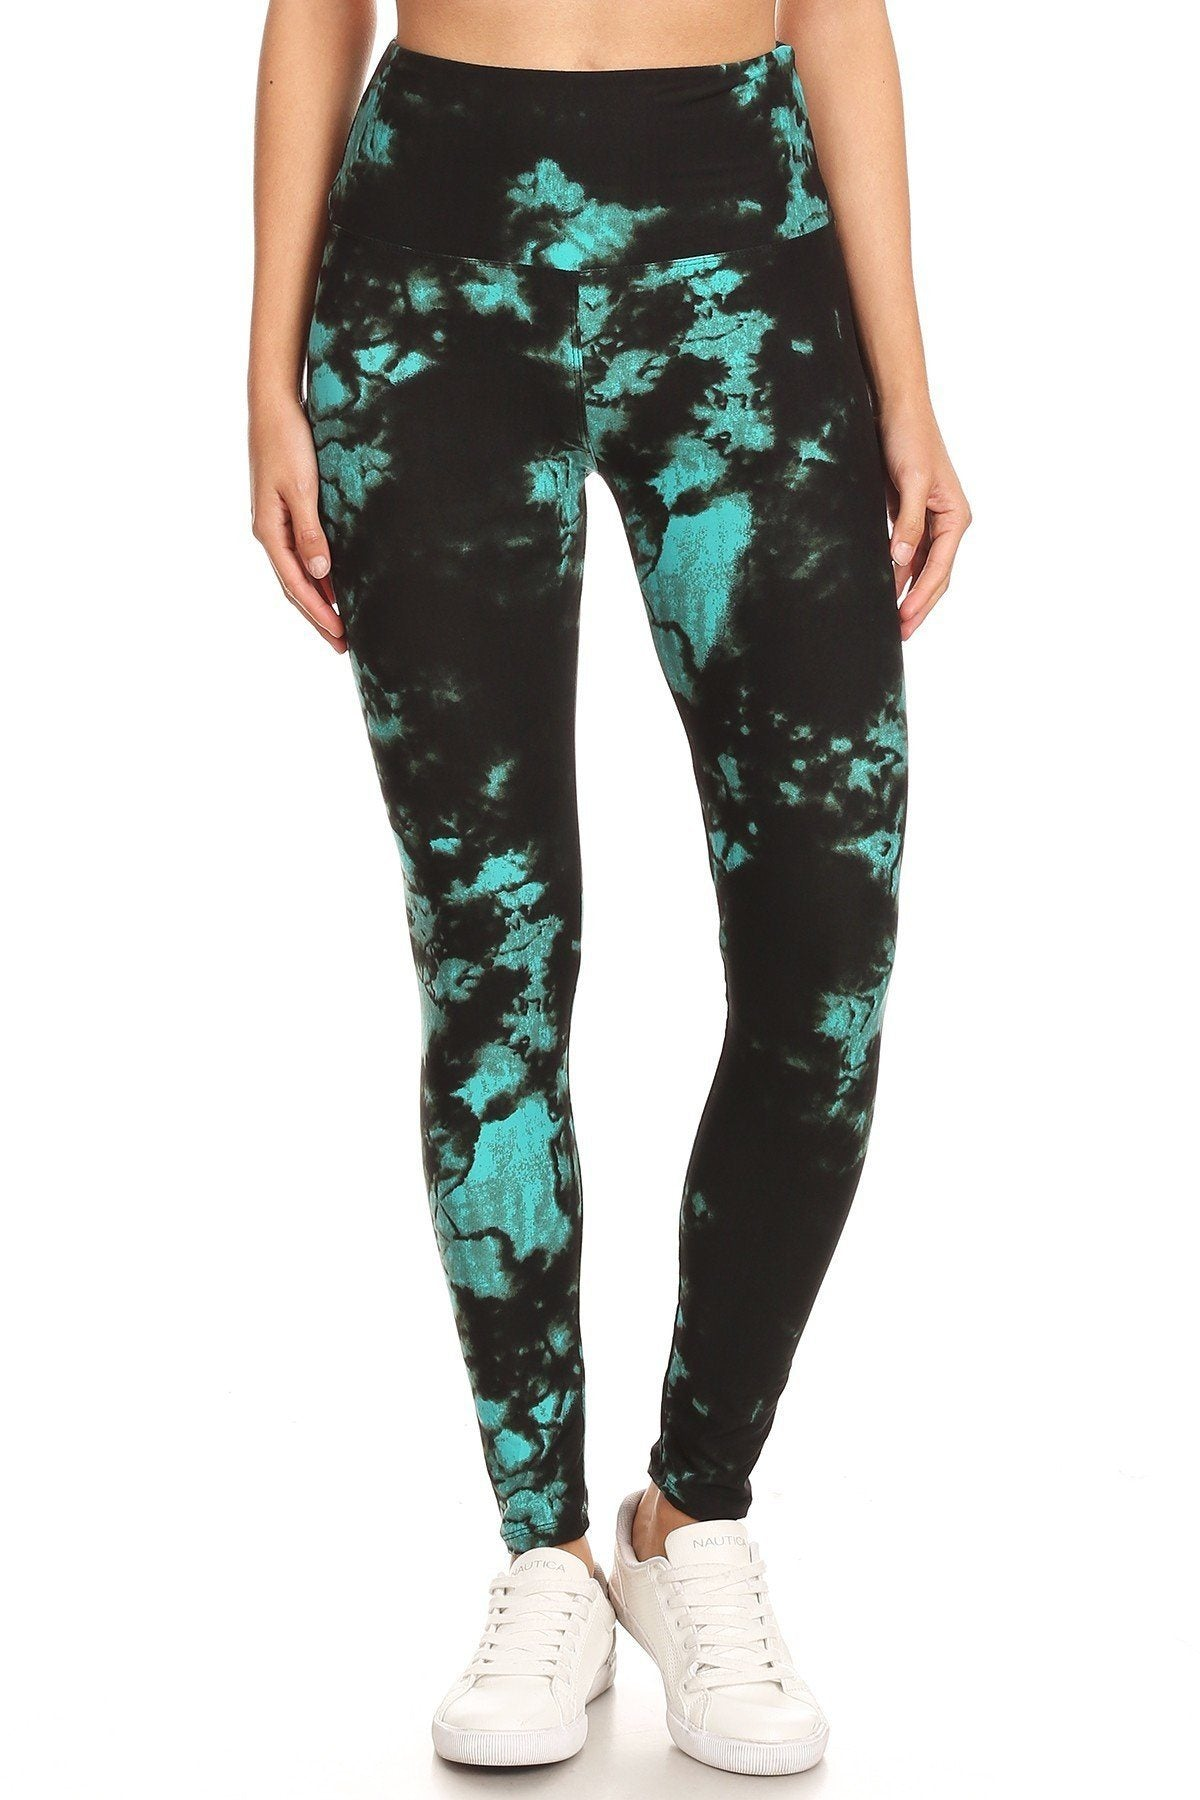 5-inch Long Yoga Style Banded Lined Tie Dye Printed Knit Legging With High Waist